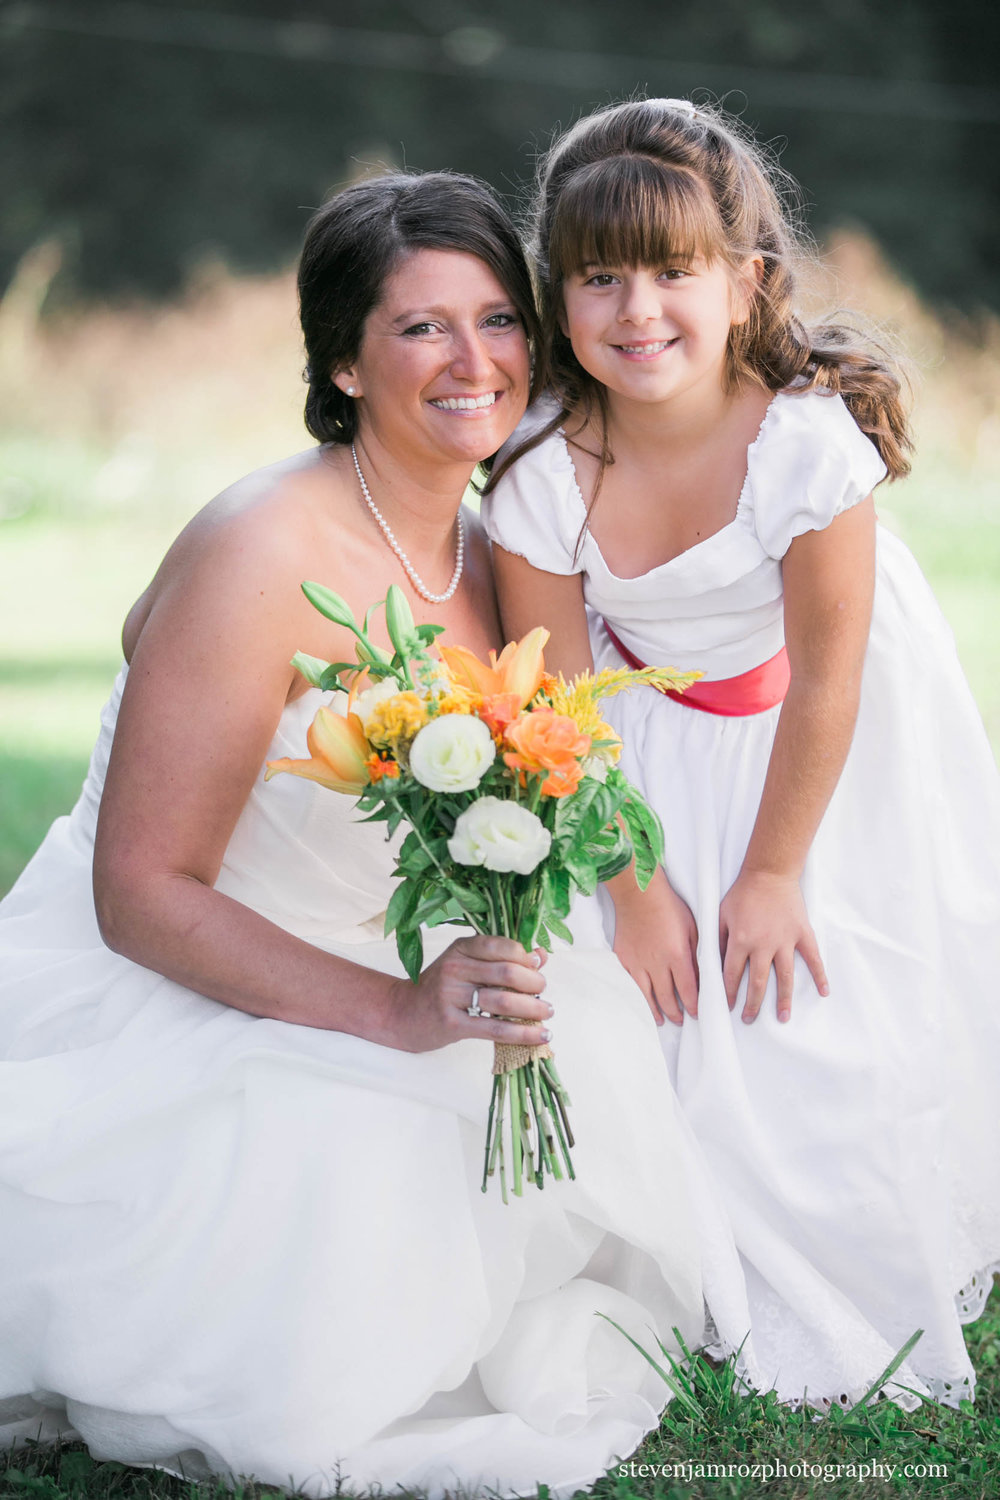 snipes-farm-wedding-flower-girl-steven-jamroz-photography-0451.jpg